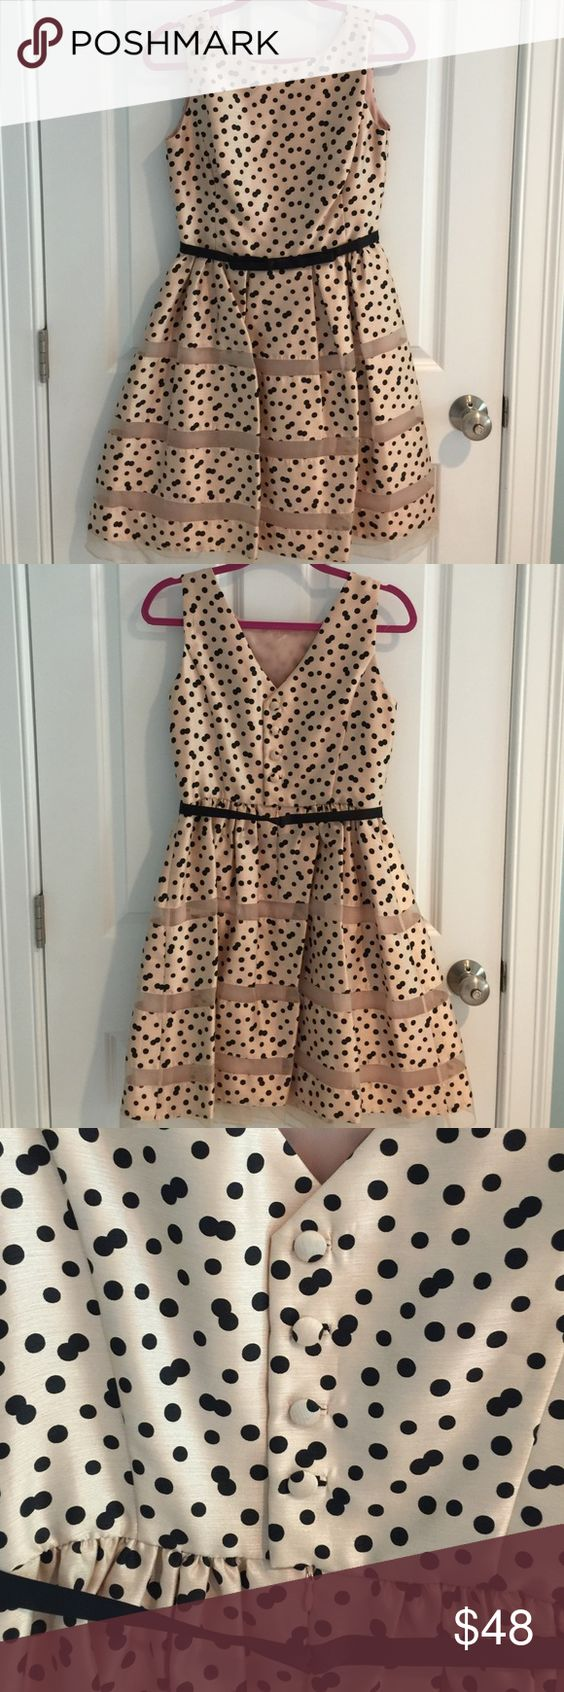 "Taylor Dress, NWOT, size 4 Nude Taylor dress with black polka dots. Black bow belt and mesh detailing on skirt. Size 4, new without tags. Materials: polyester and silk.  No trades, all offers will be negotiated when using the ""offer"" button. Please read my reviews and buy with confidence! Taylor Dresses Dresses"